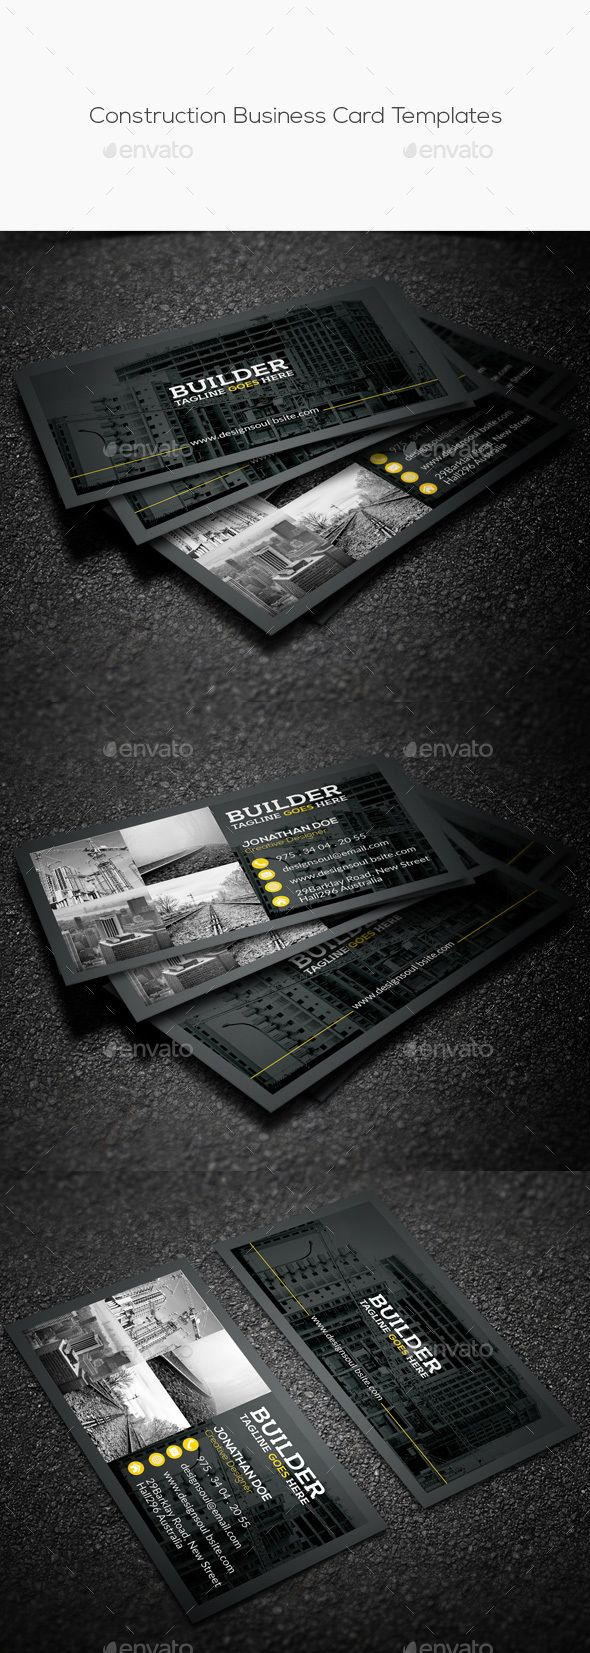 Business Cards Design: 50+ Amazing Examples to Inspire You - 19 | Ad ...